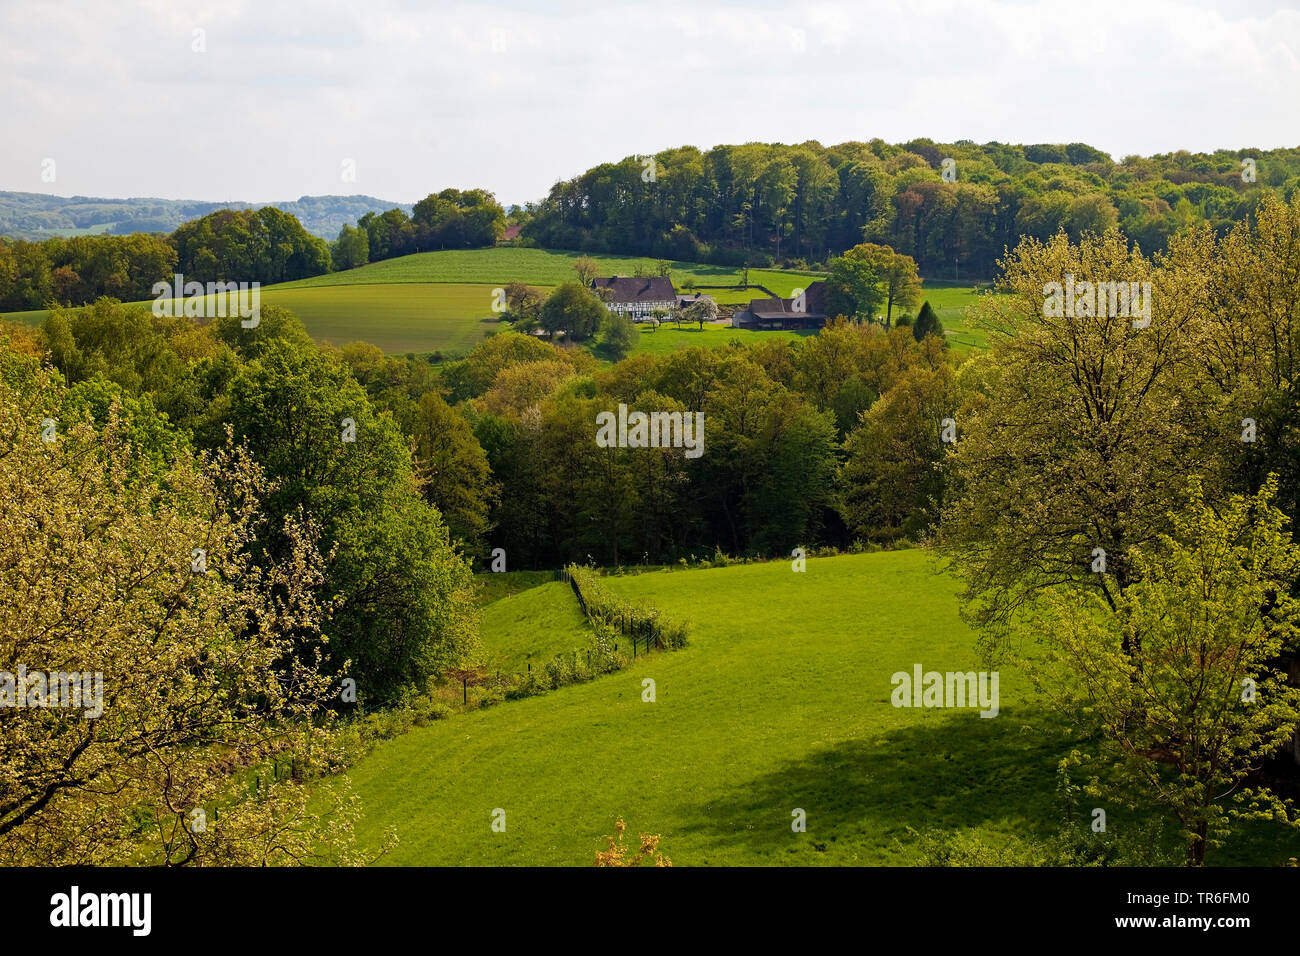 view from Ruhr University Bochum to farmhouse in the Lottental valley, Germany, North Rhine-Westphalia, Ruhr Area, Bochum Stock Photo